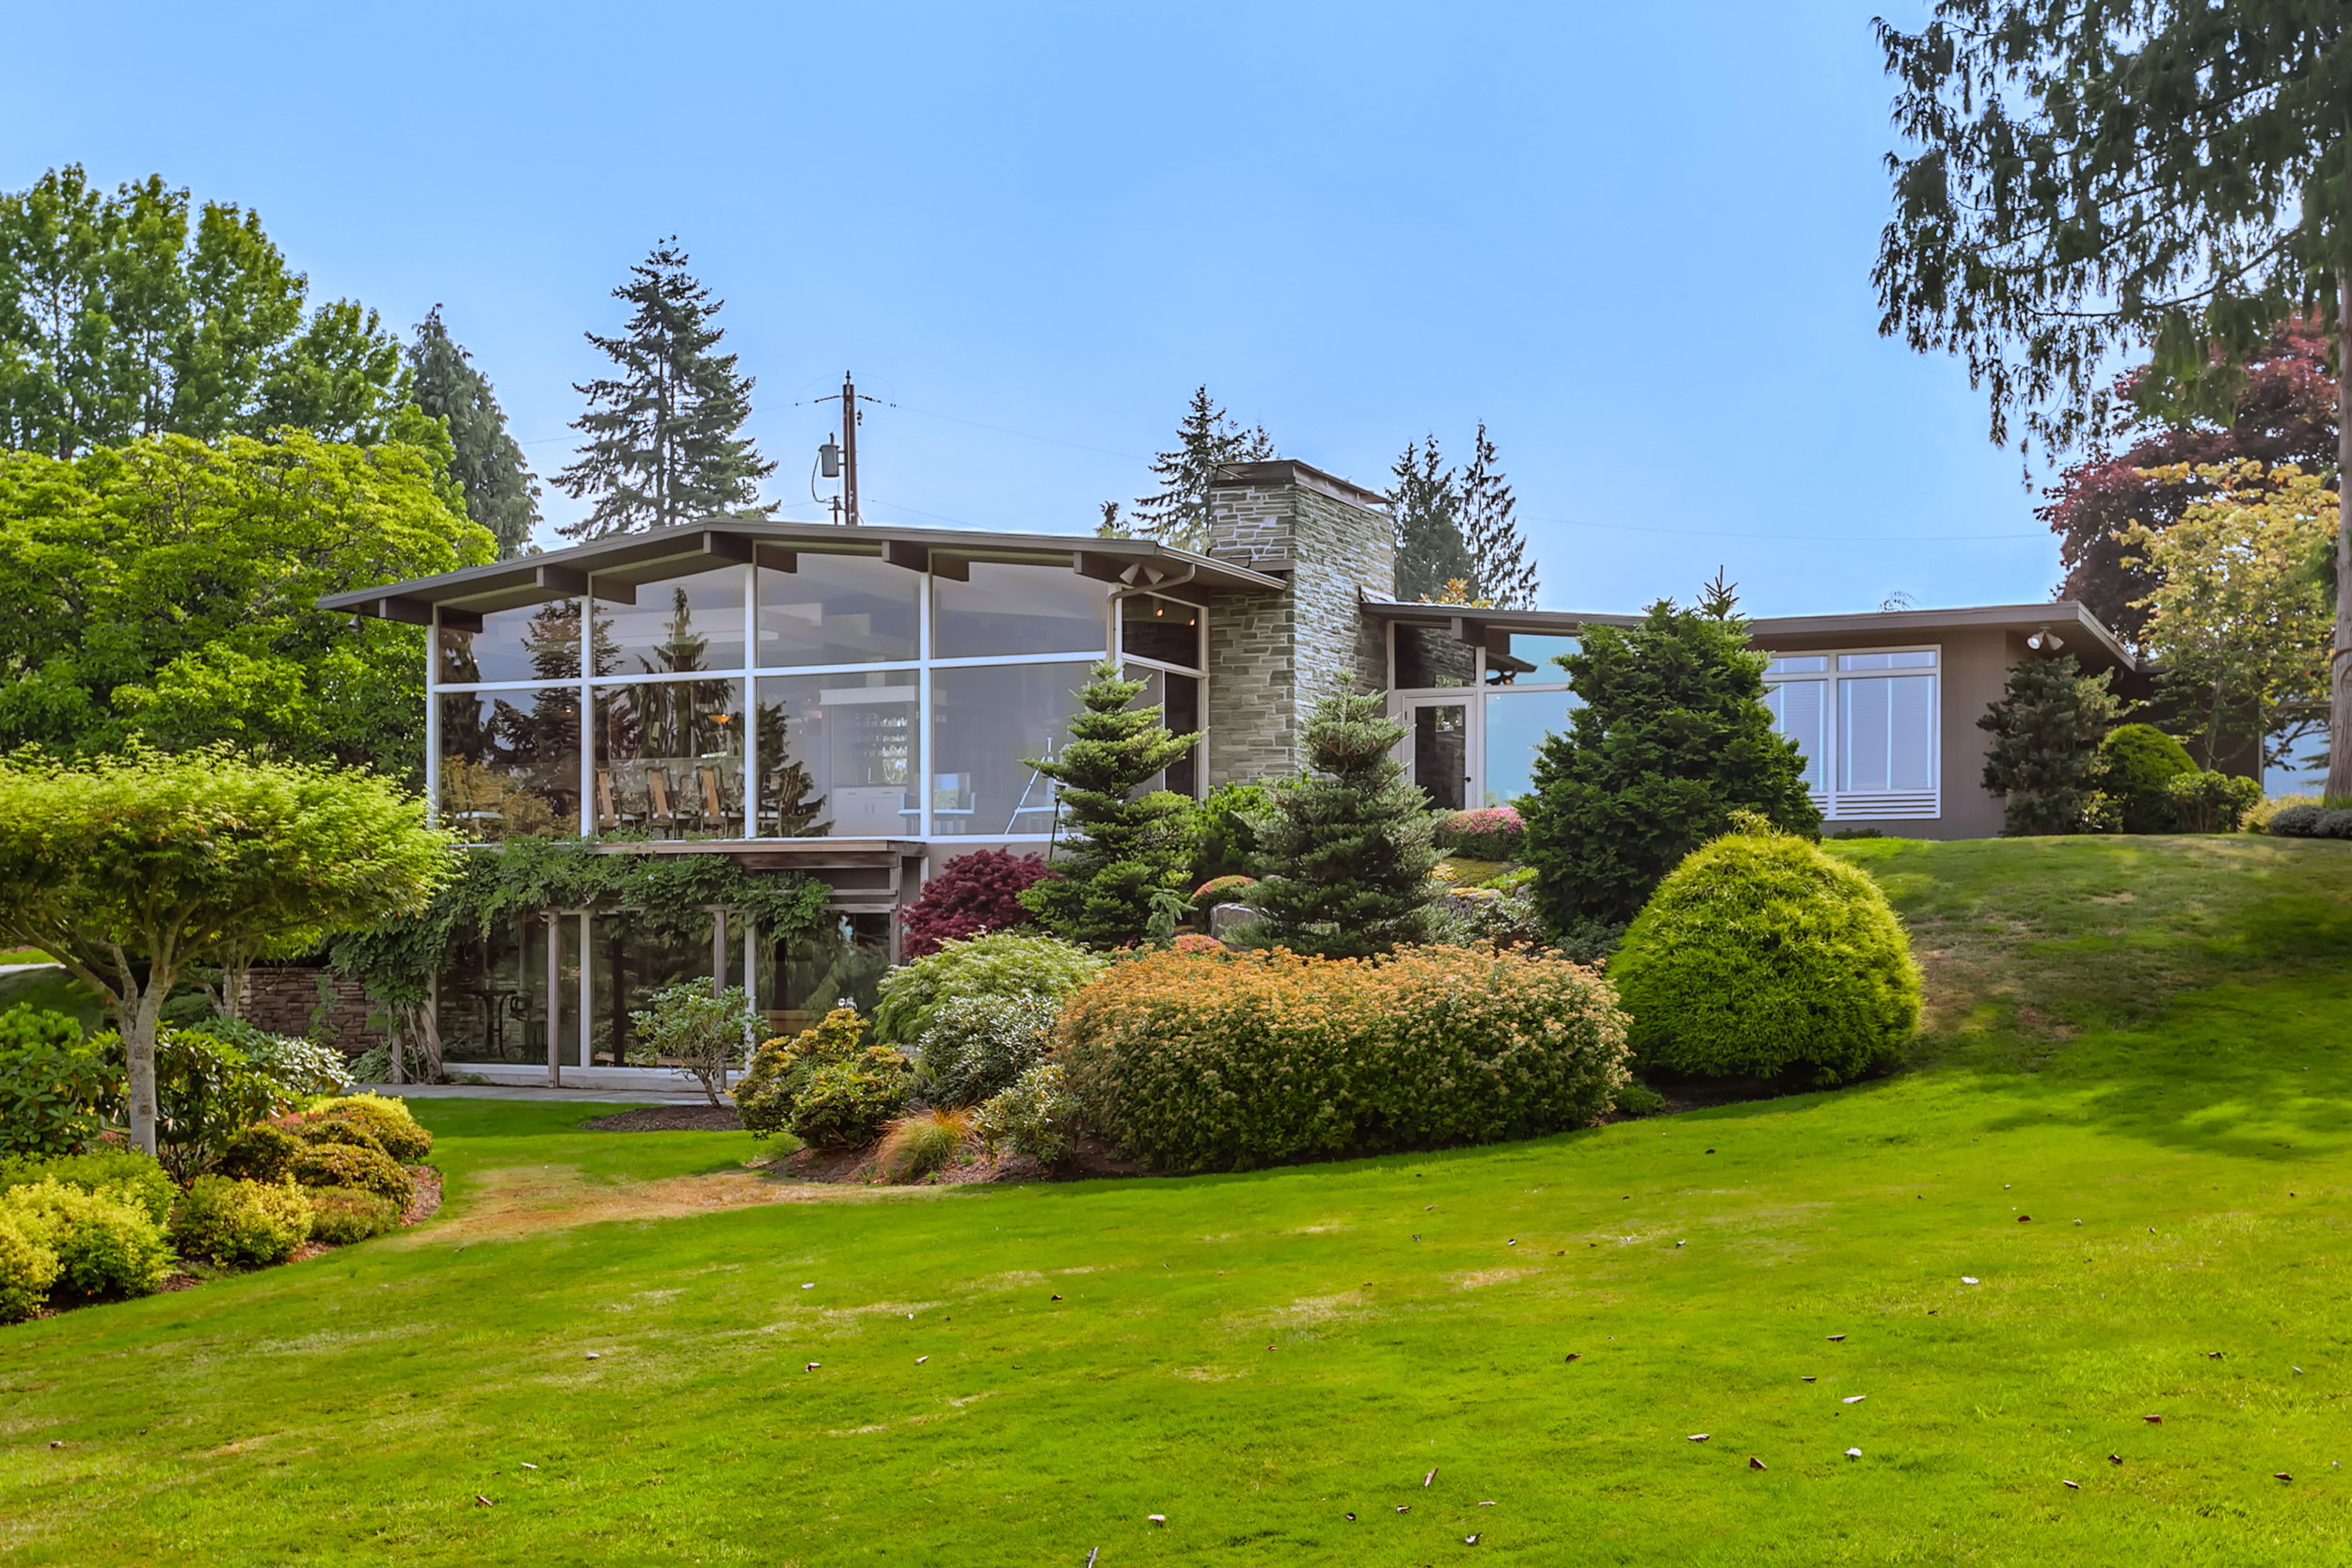 316 Heather Road - Everett, WA // $1,495,000